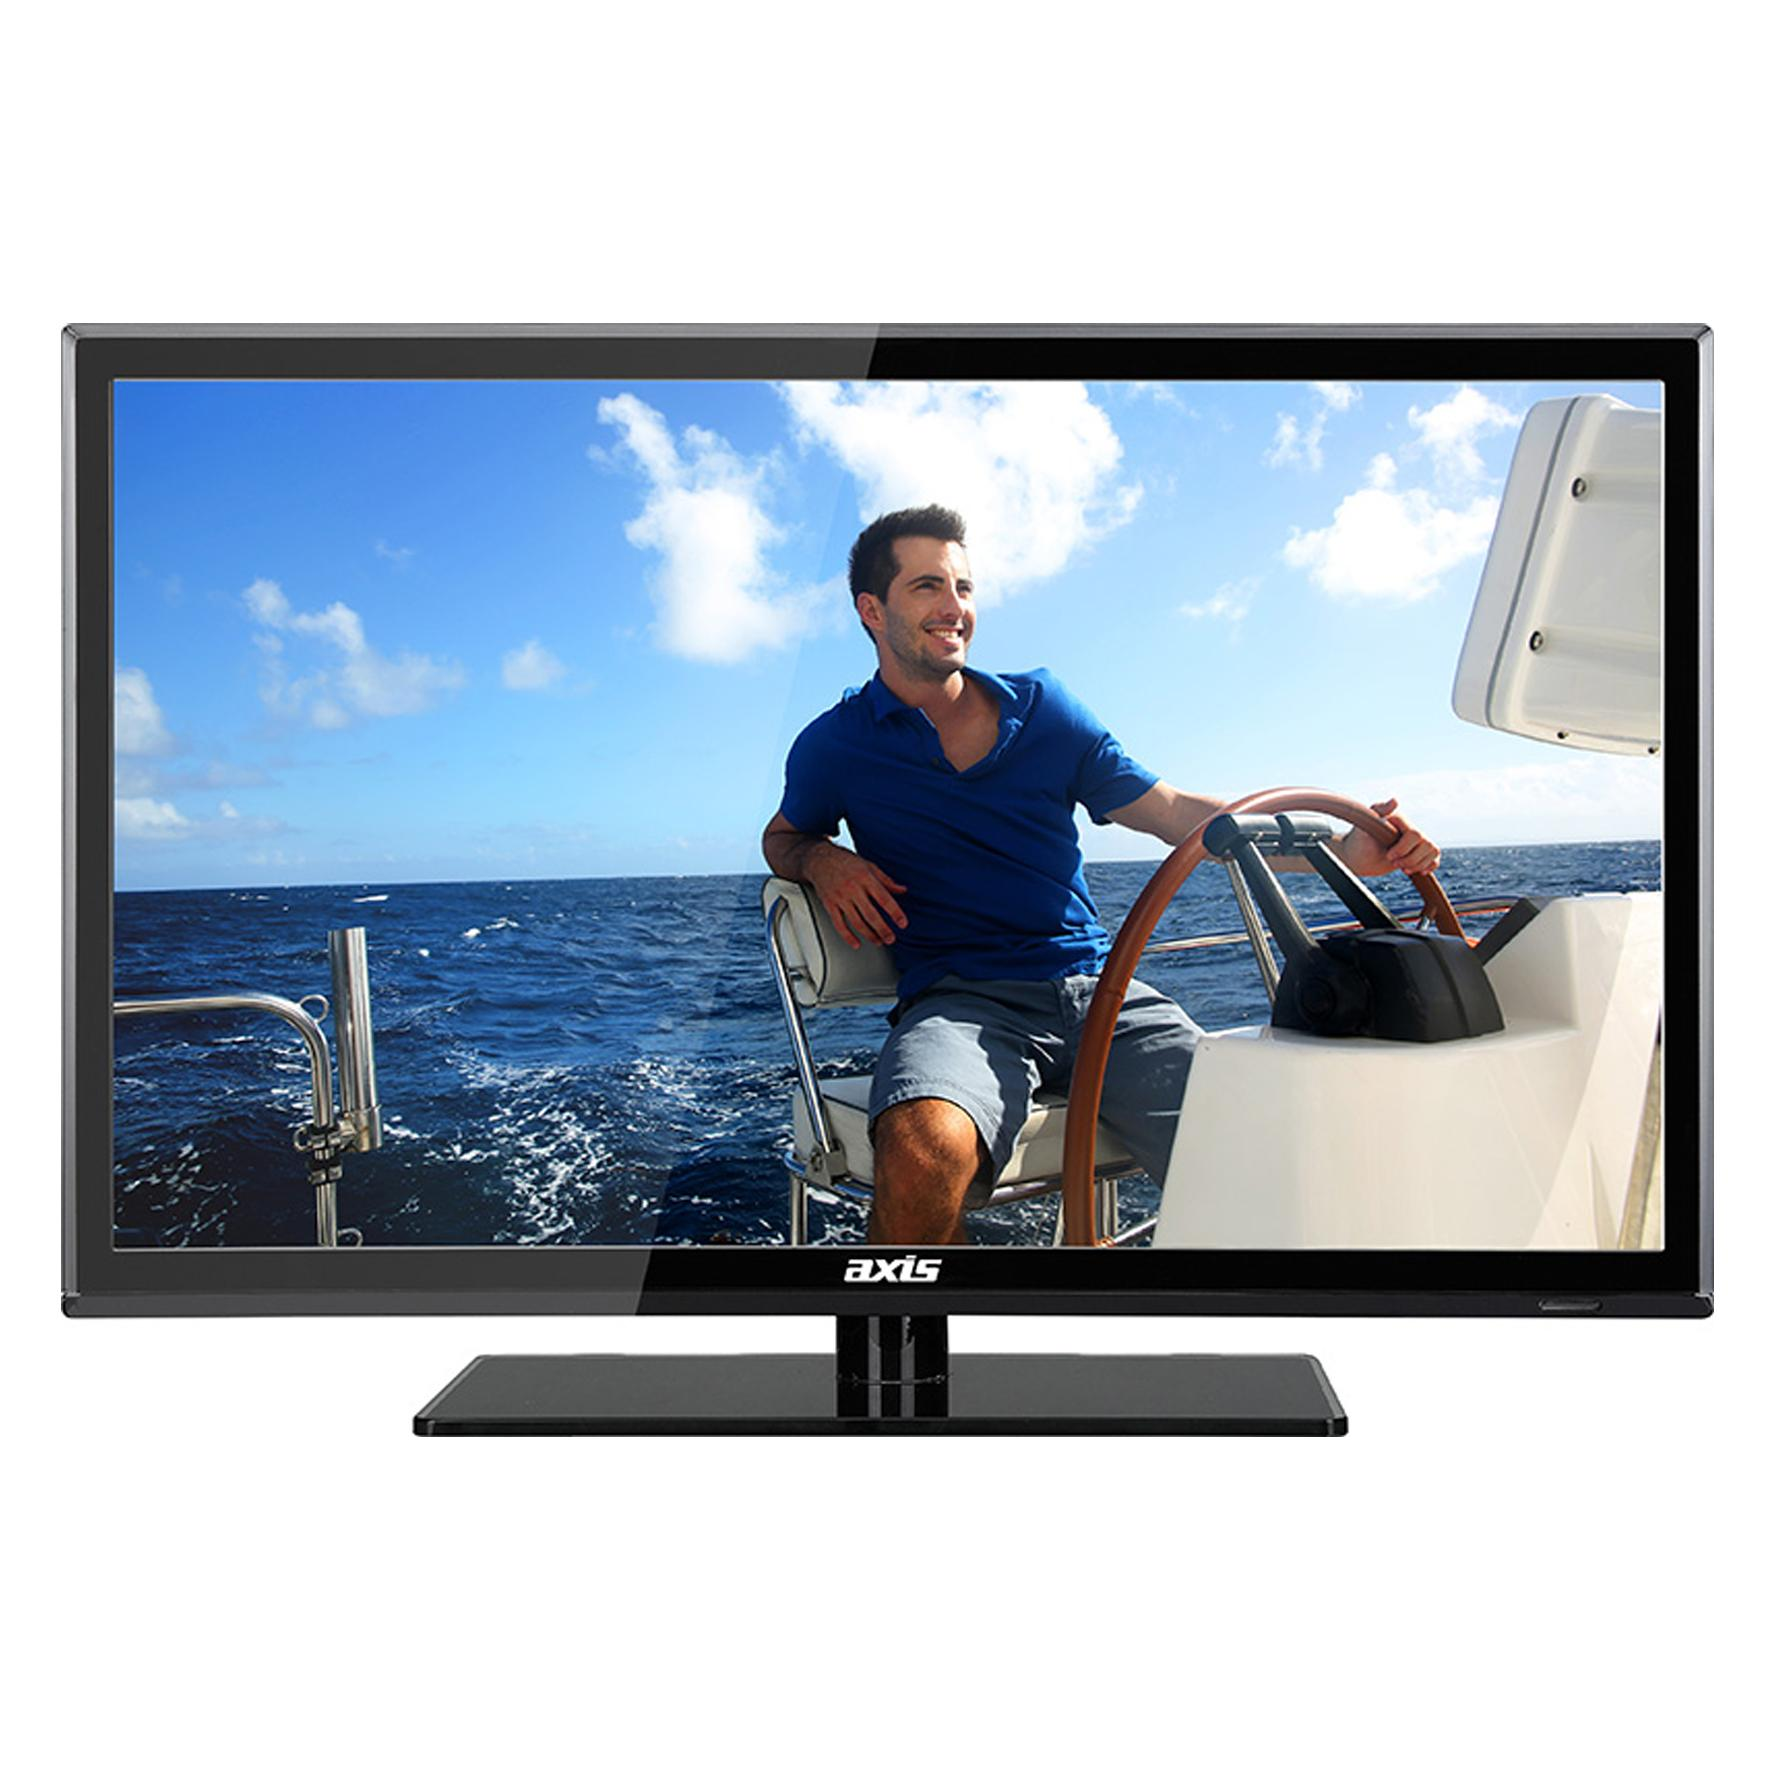 AXIS 1519 SERIES 2 DVD LED MULTIMEDIA Home Of 12 Volt